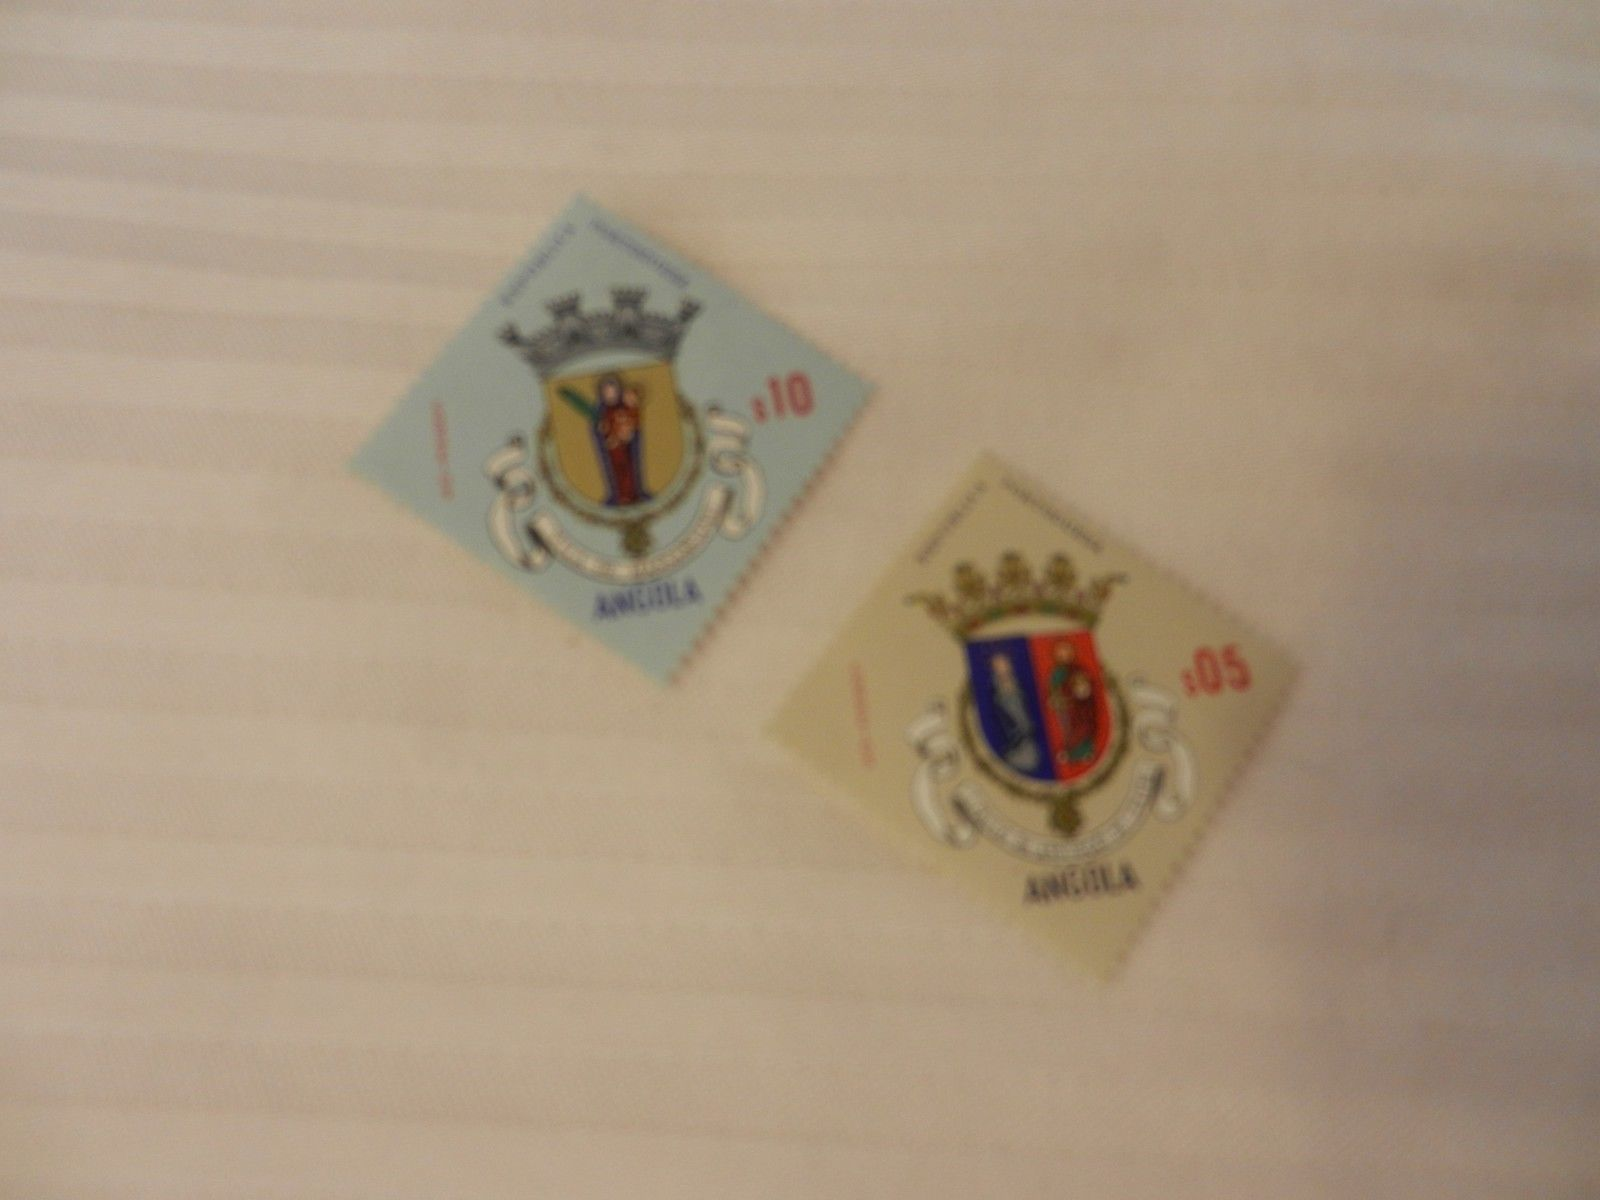 Lot of 2 Angola 1970s Stamps, Religious Coat of Arms